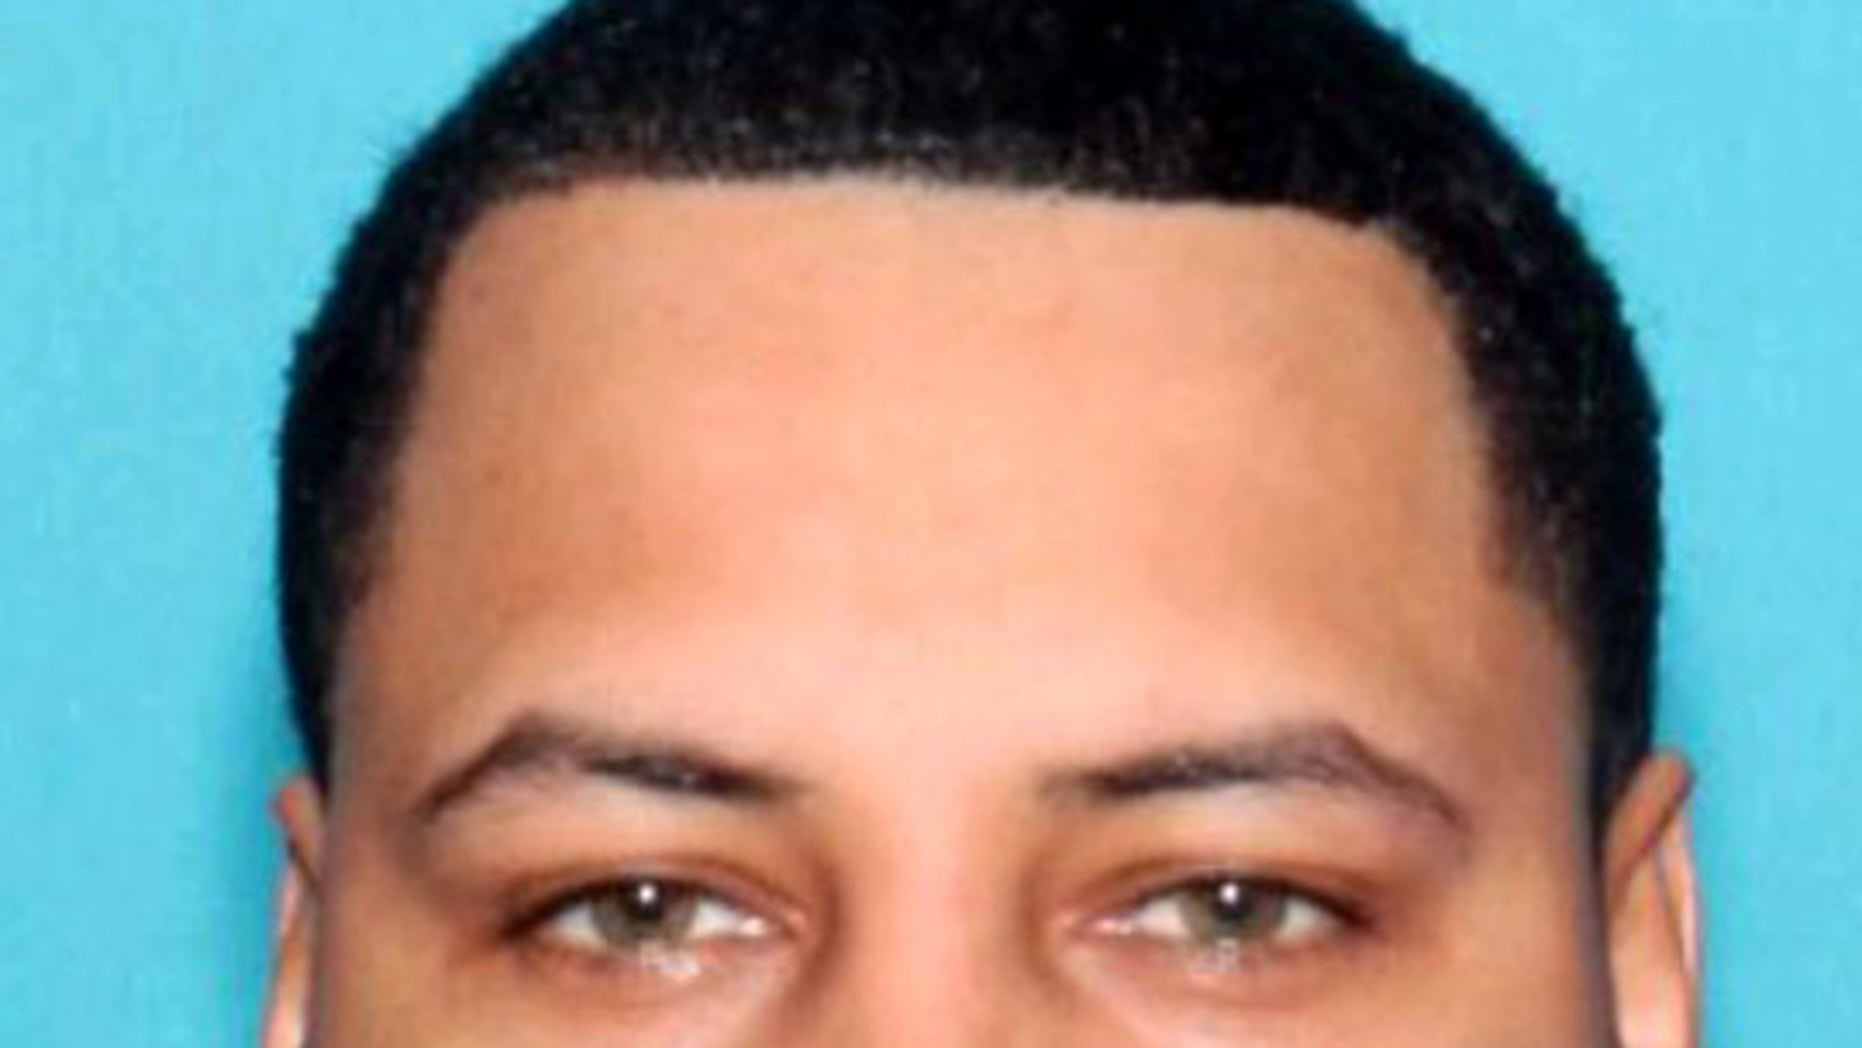 This undated photo shows Jayveon Caballero, of Barre, Vt. Caballero is wanted for the murder of 33-year-old Markus Austin in Montpelier, Vt.